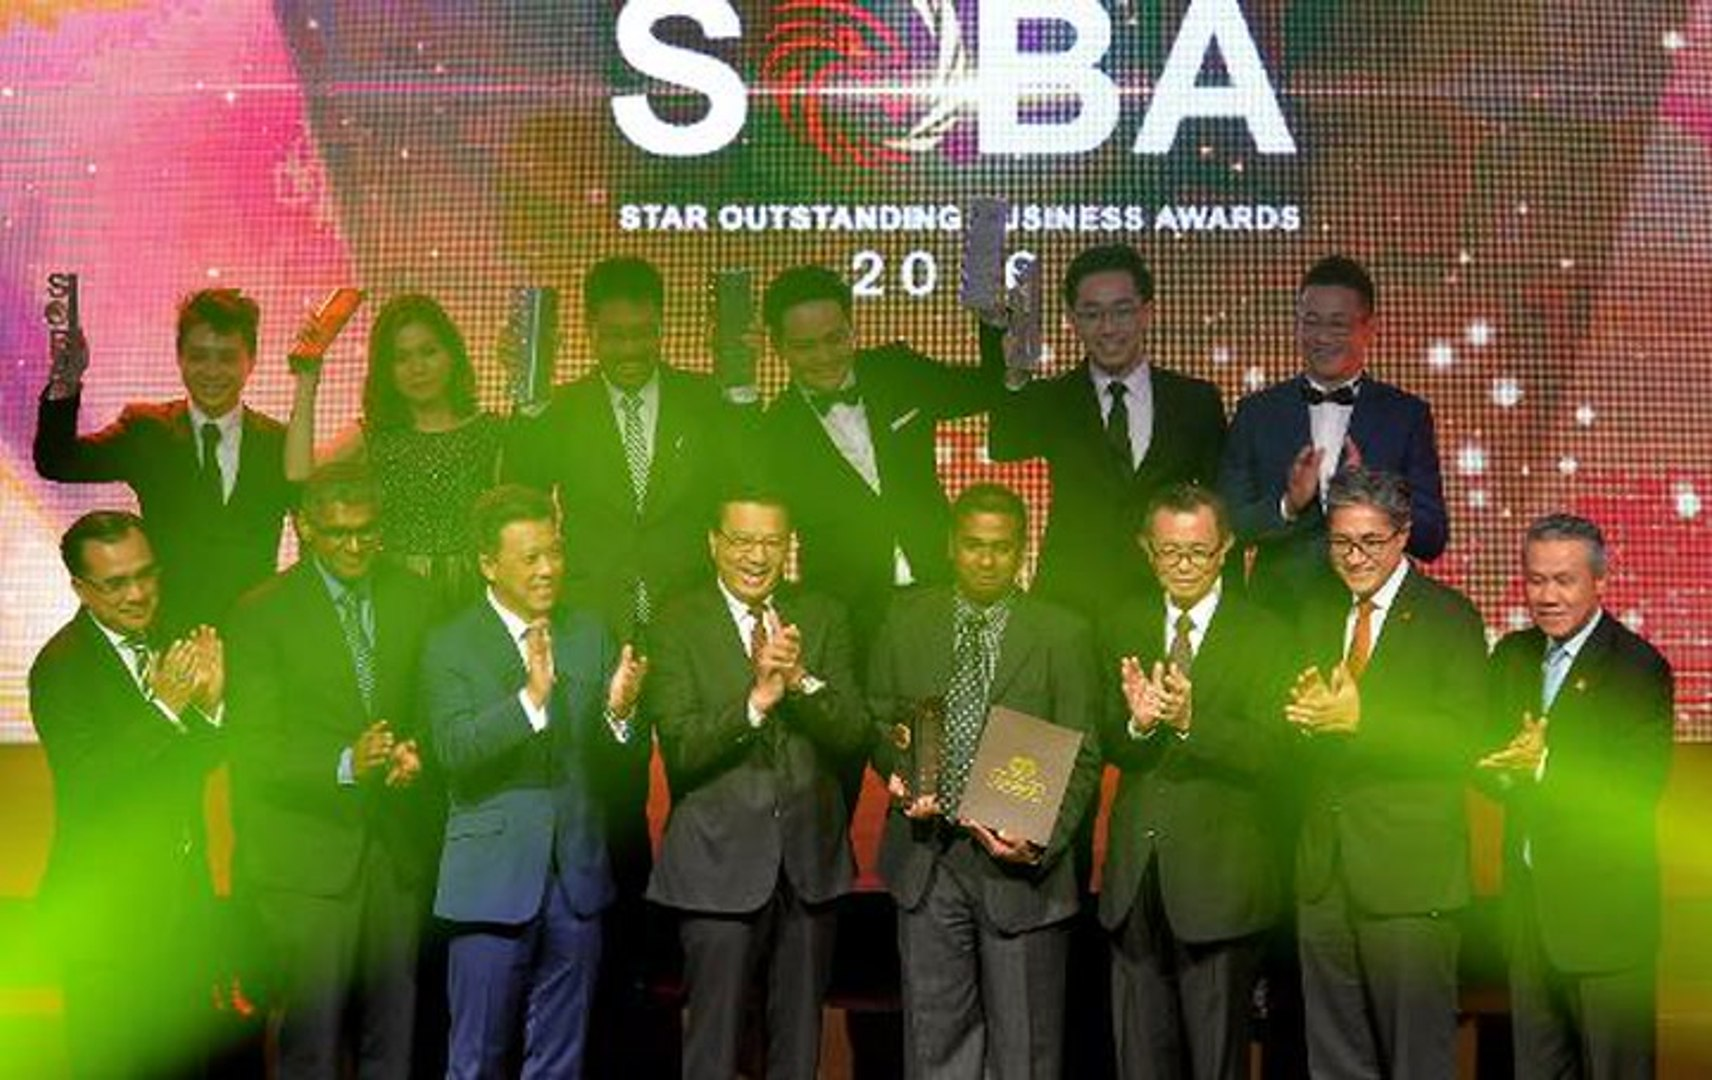 Exemplary SMEs recognised at SOBA 2016